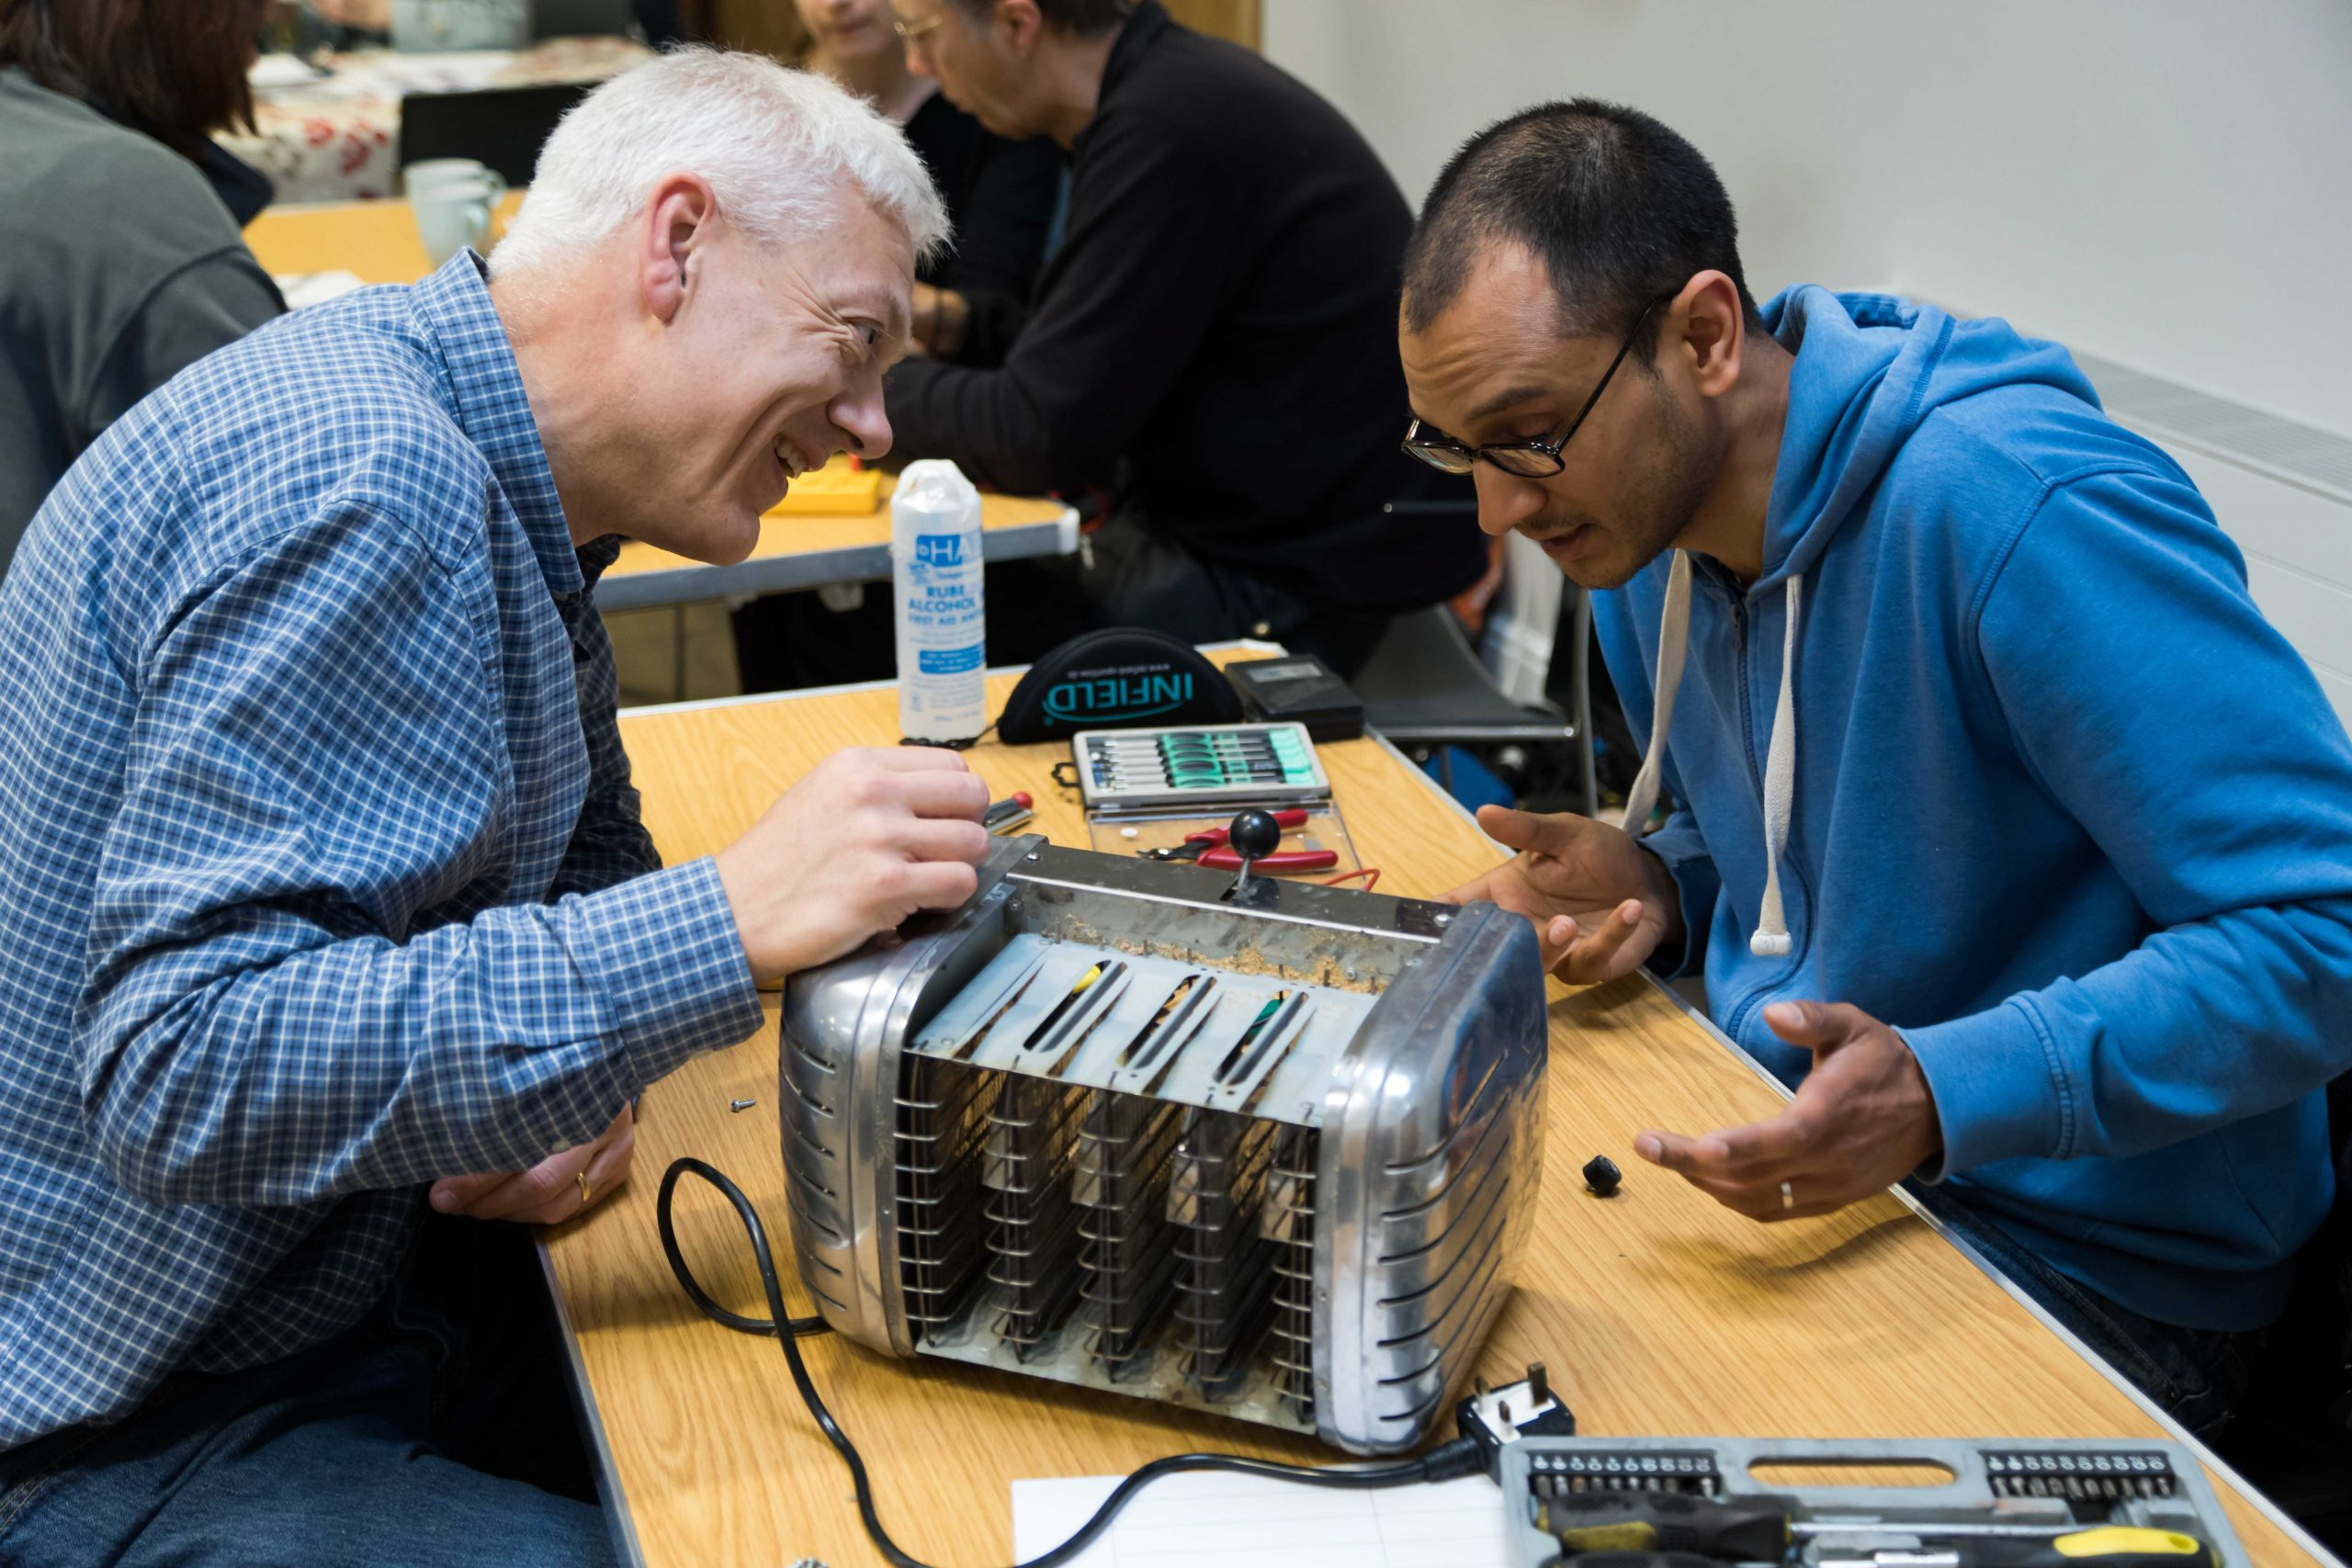 An extra special filmed Repair Cafe at Makespace